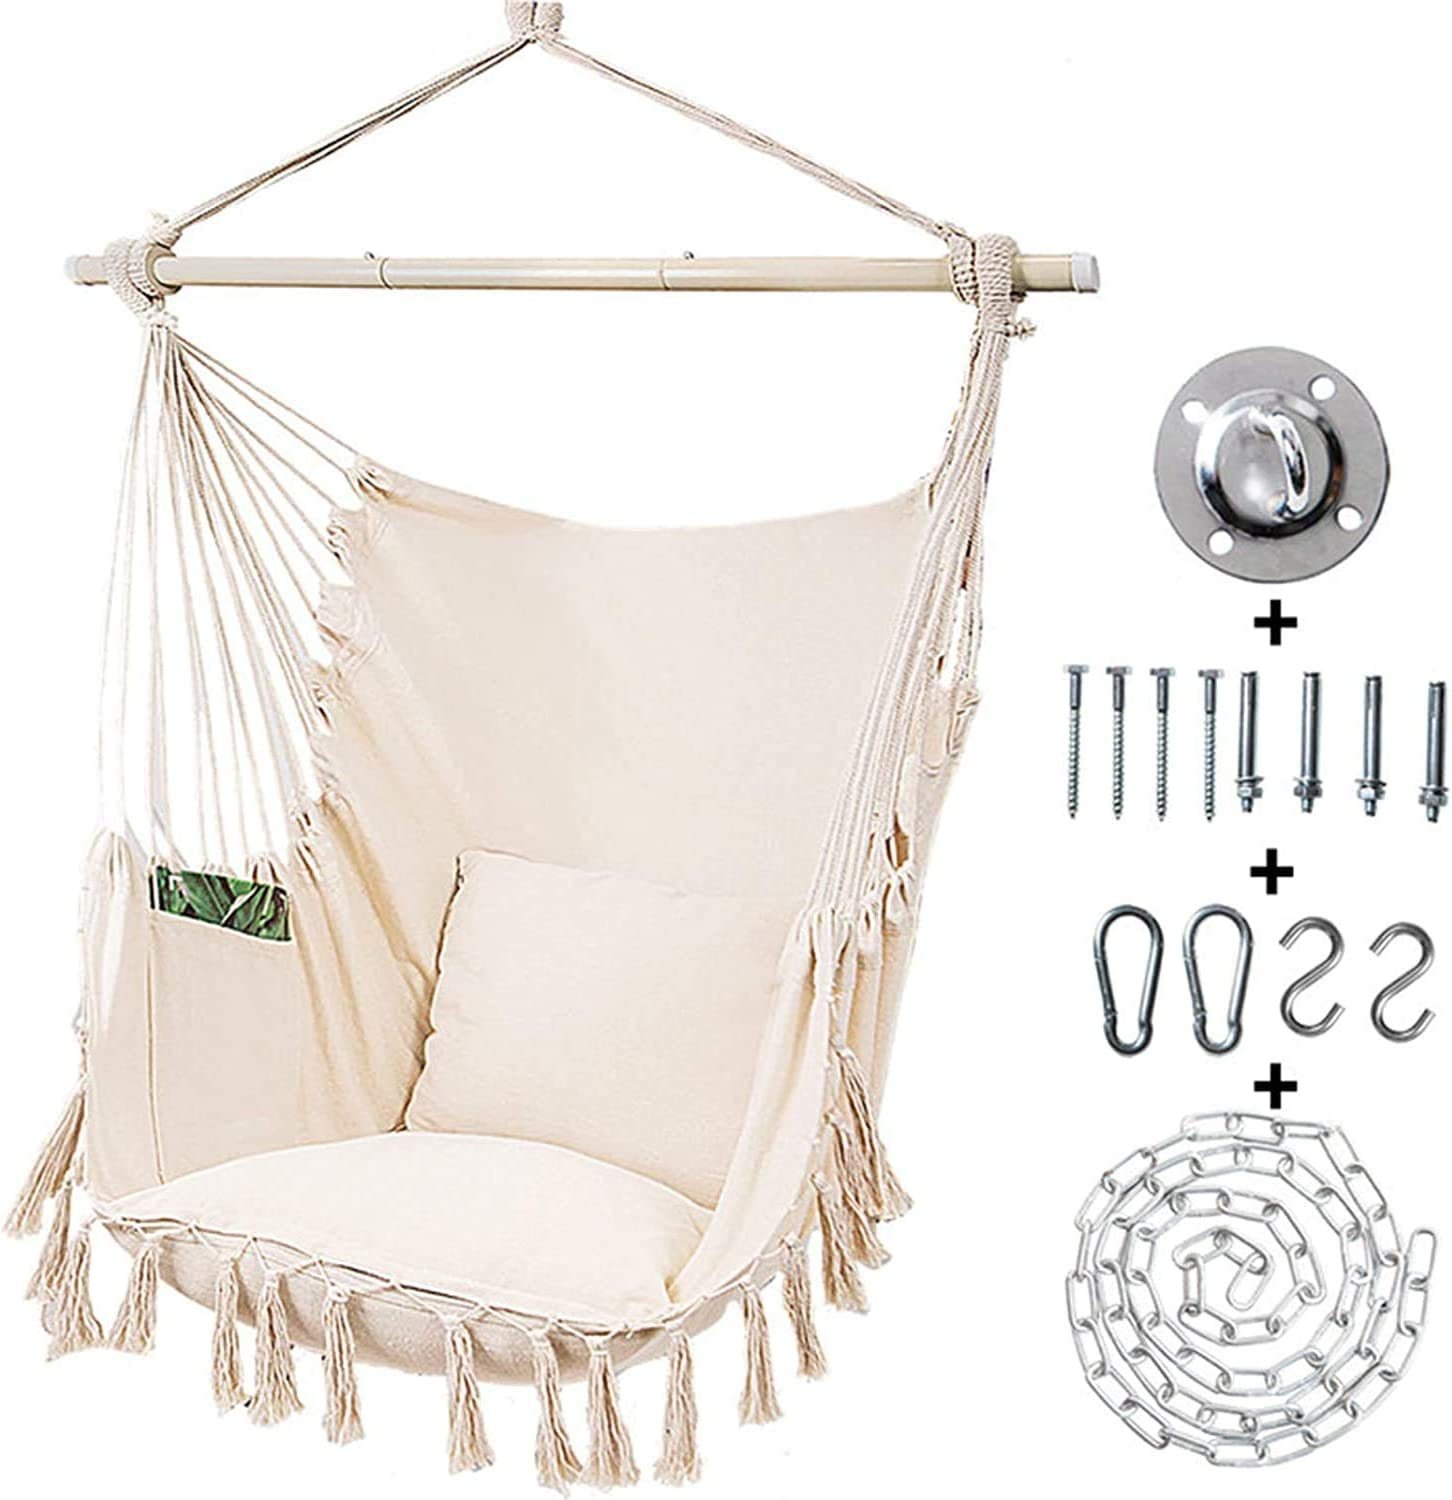 Kanchimi Bargain Hanging Chair-Max 330 Lbs.Large In a popularity Chair Hammock Deta with